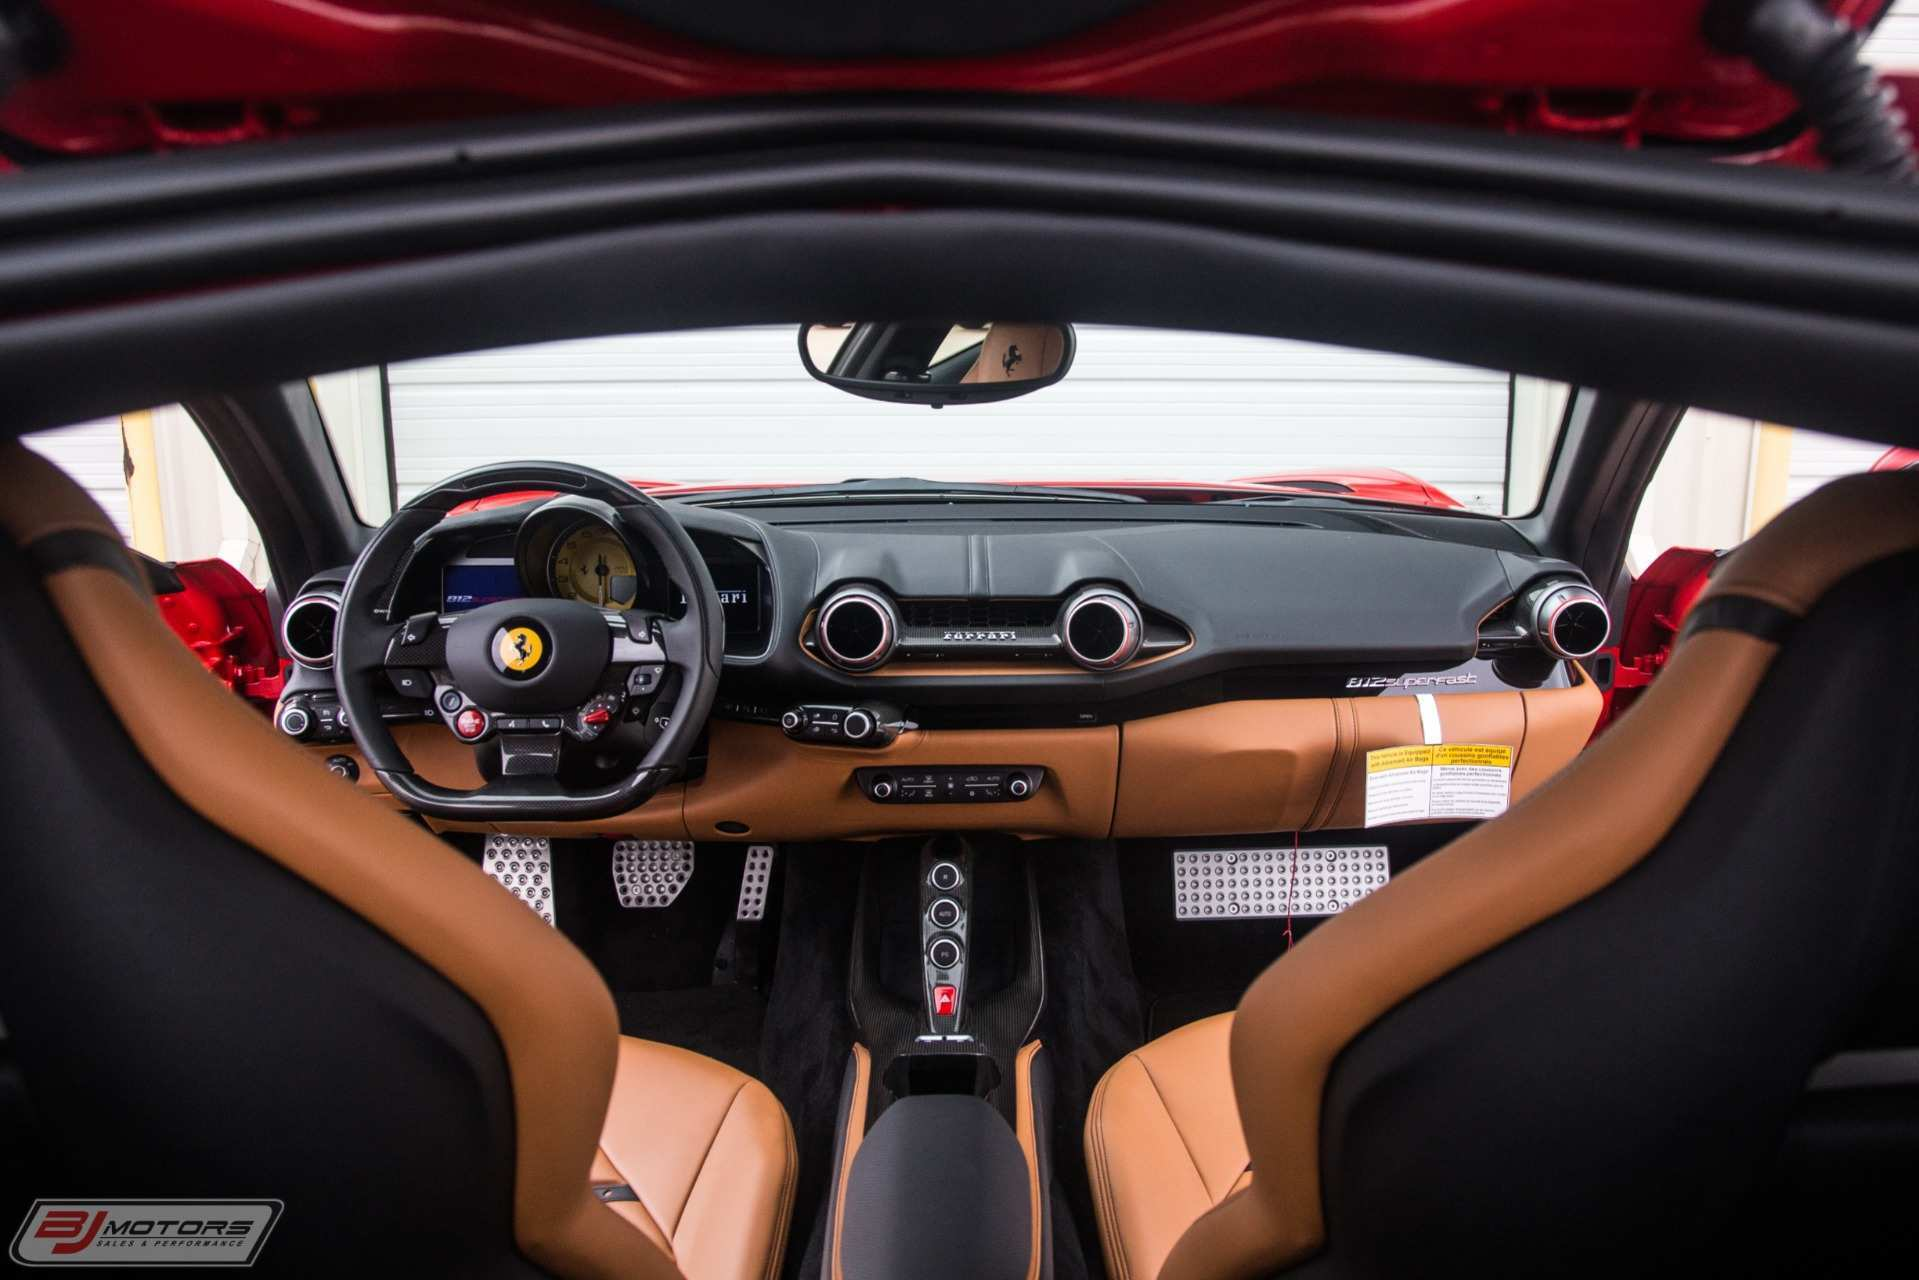 80 Gallery of 2019 Ferrari Superfast Interior Exterior and Interior with 2019 Ferrari Superfast Interior